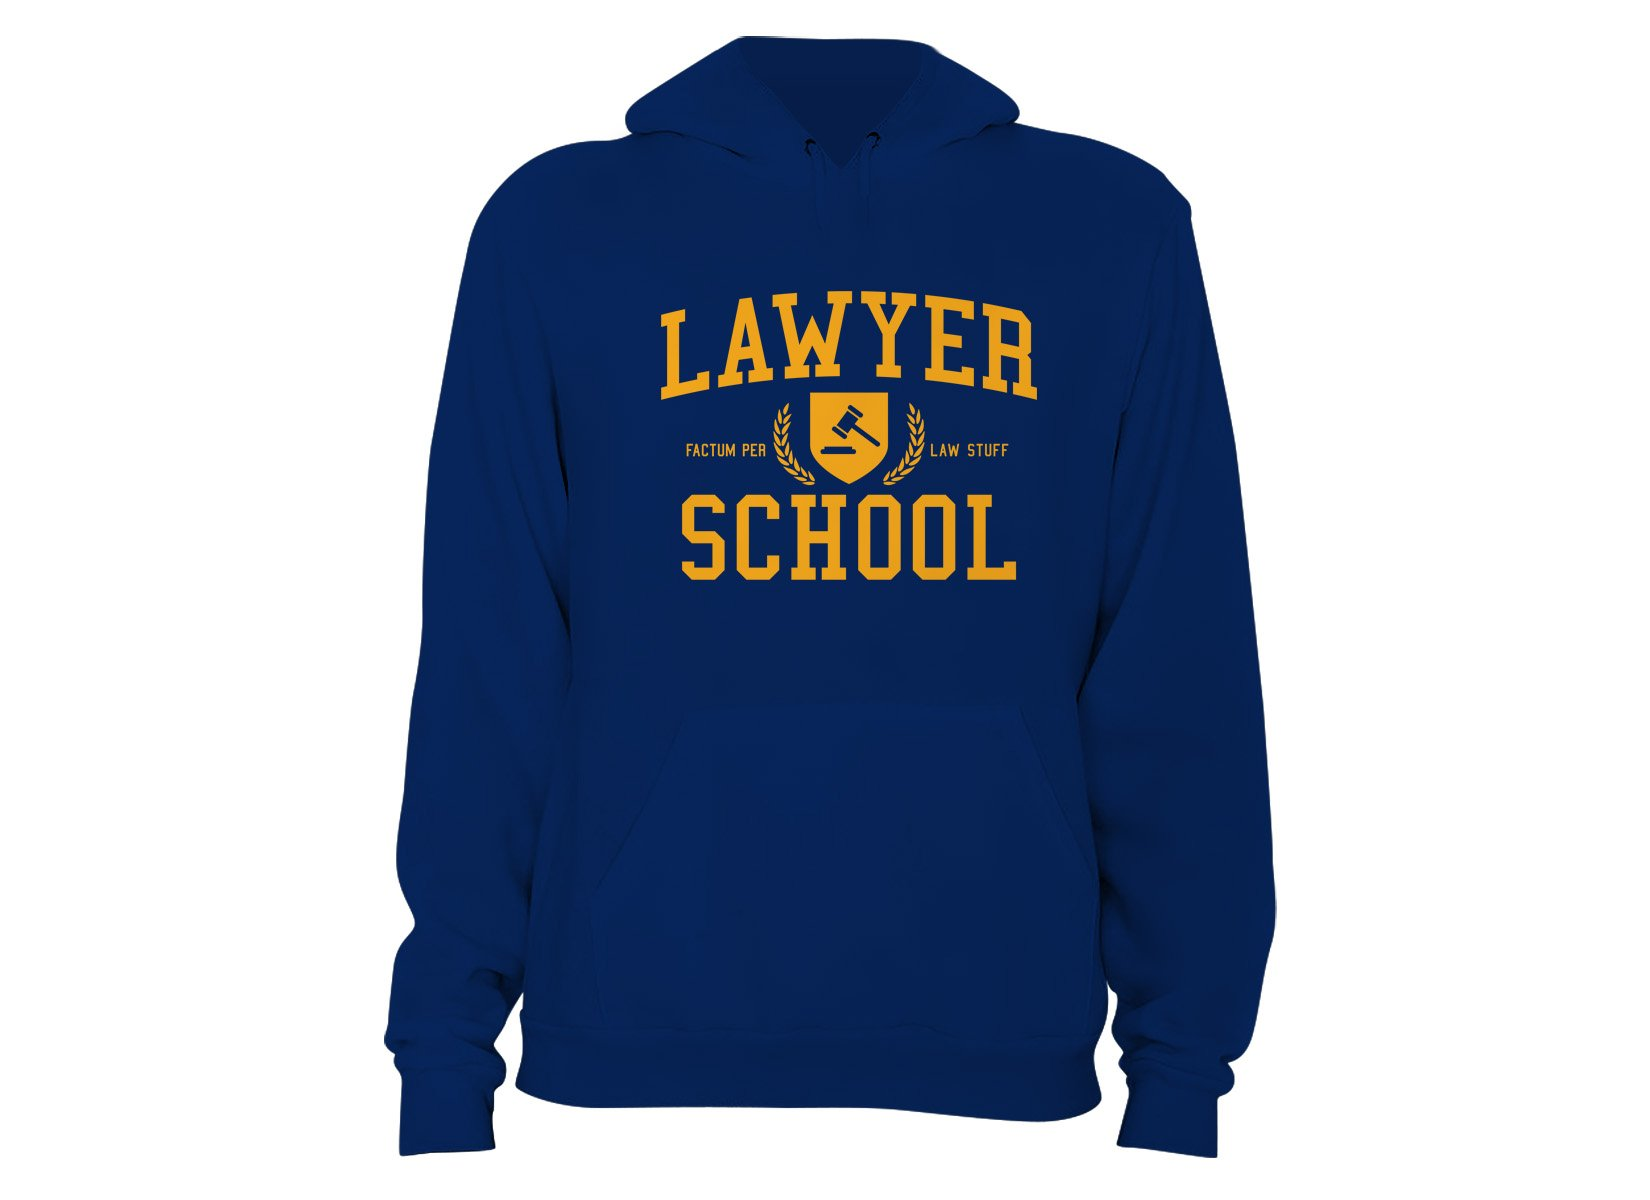 Lawyer School on Hoodie